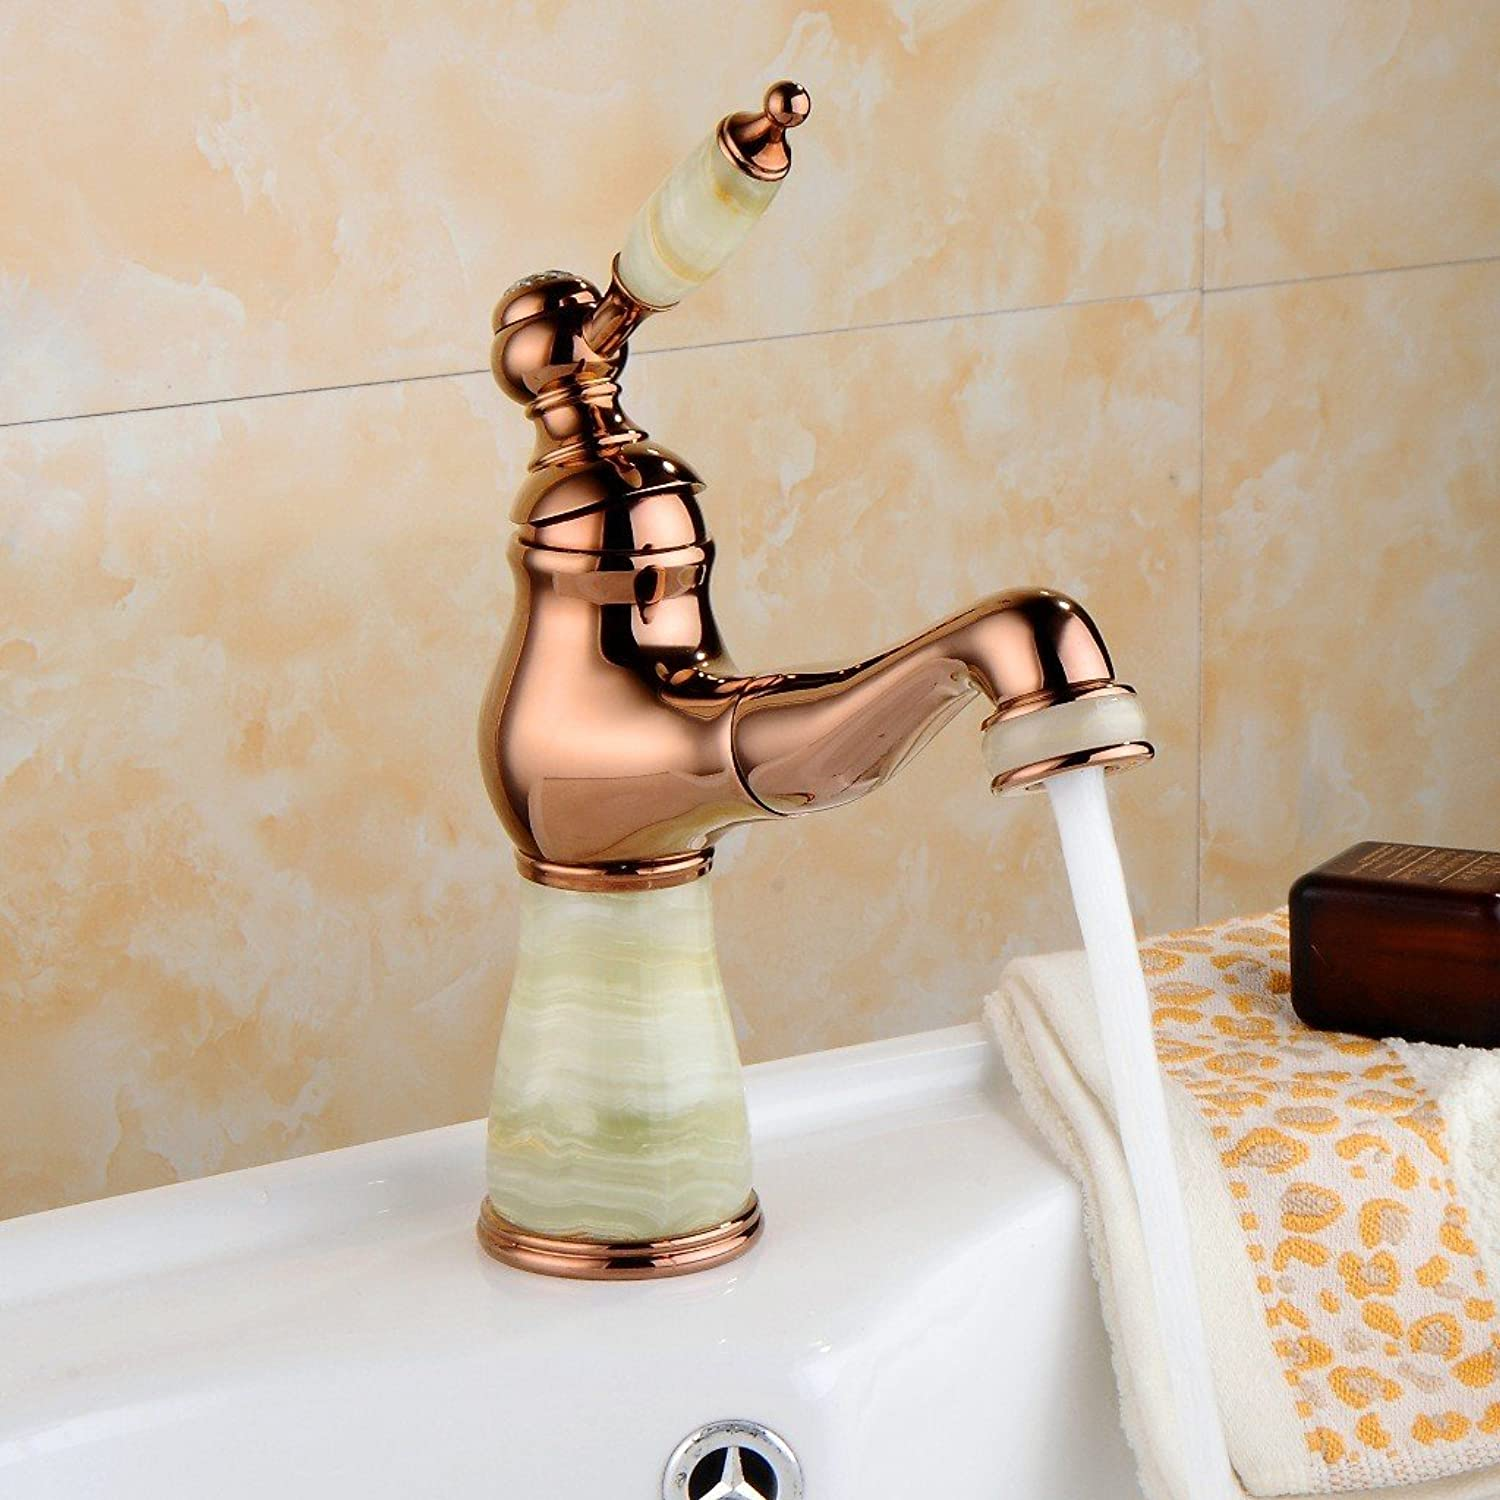 Bijjaladeva Antique Bathroom Sink Vessel Faucet Basin Mixer Tap The copper plated pull-down jade mixed faucet chrome pull-down faucet pink gold pull-down Jade